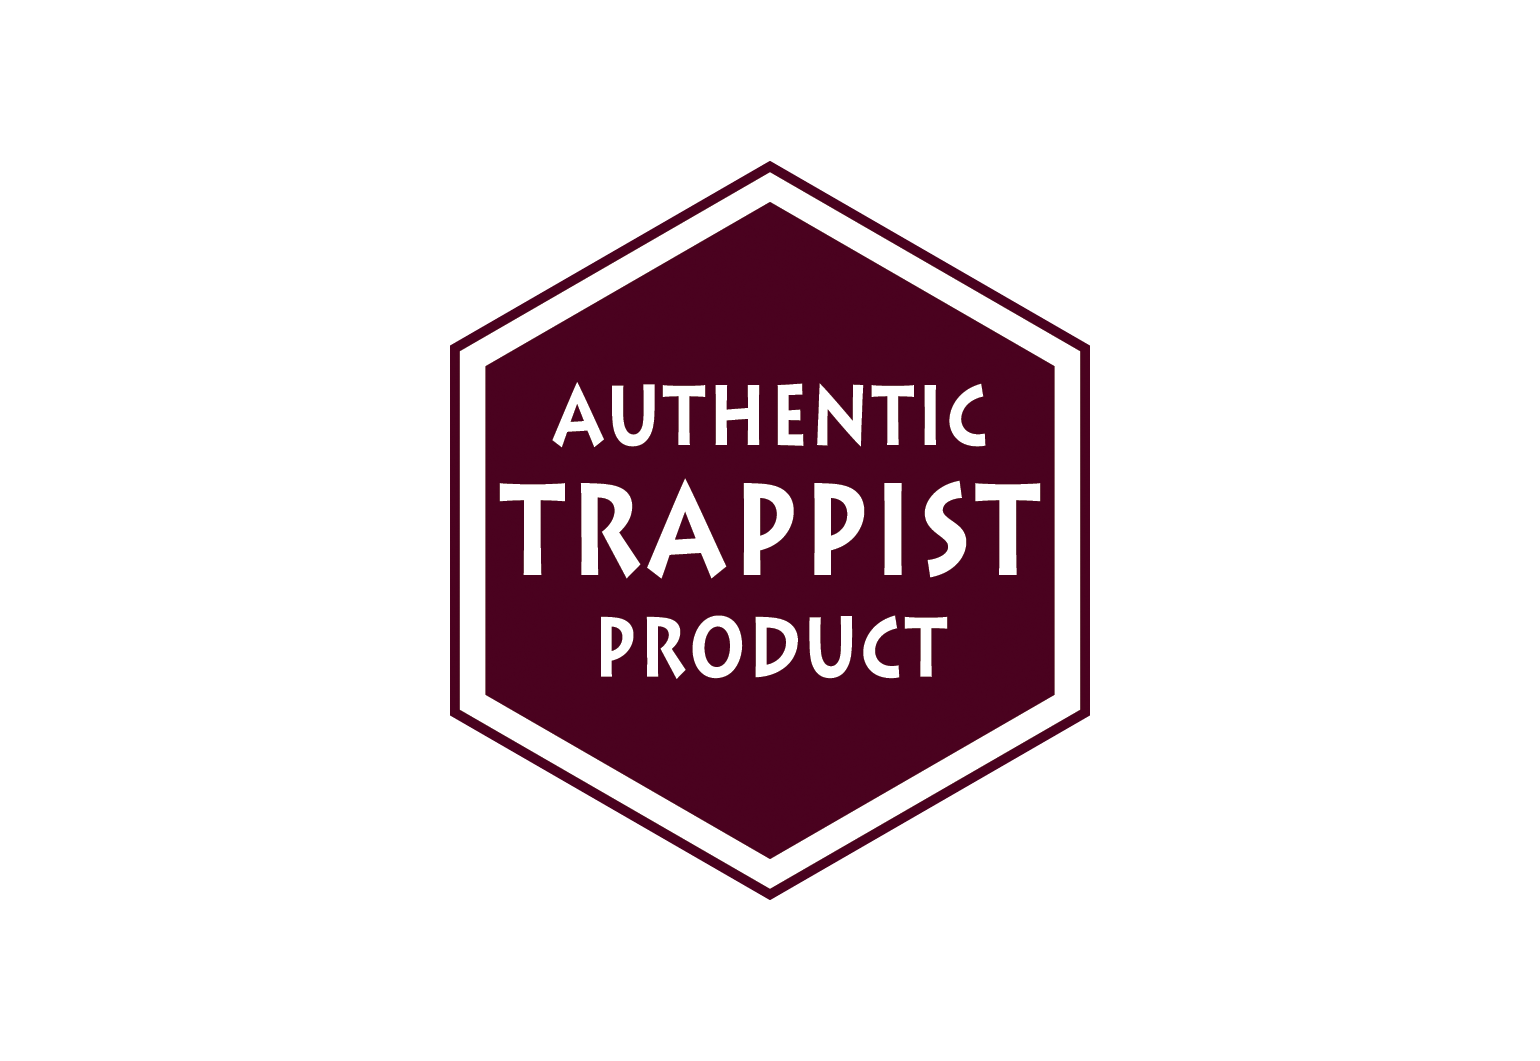 Zeshoekig 'Authentic Trappist Product' logo